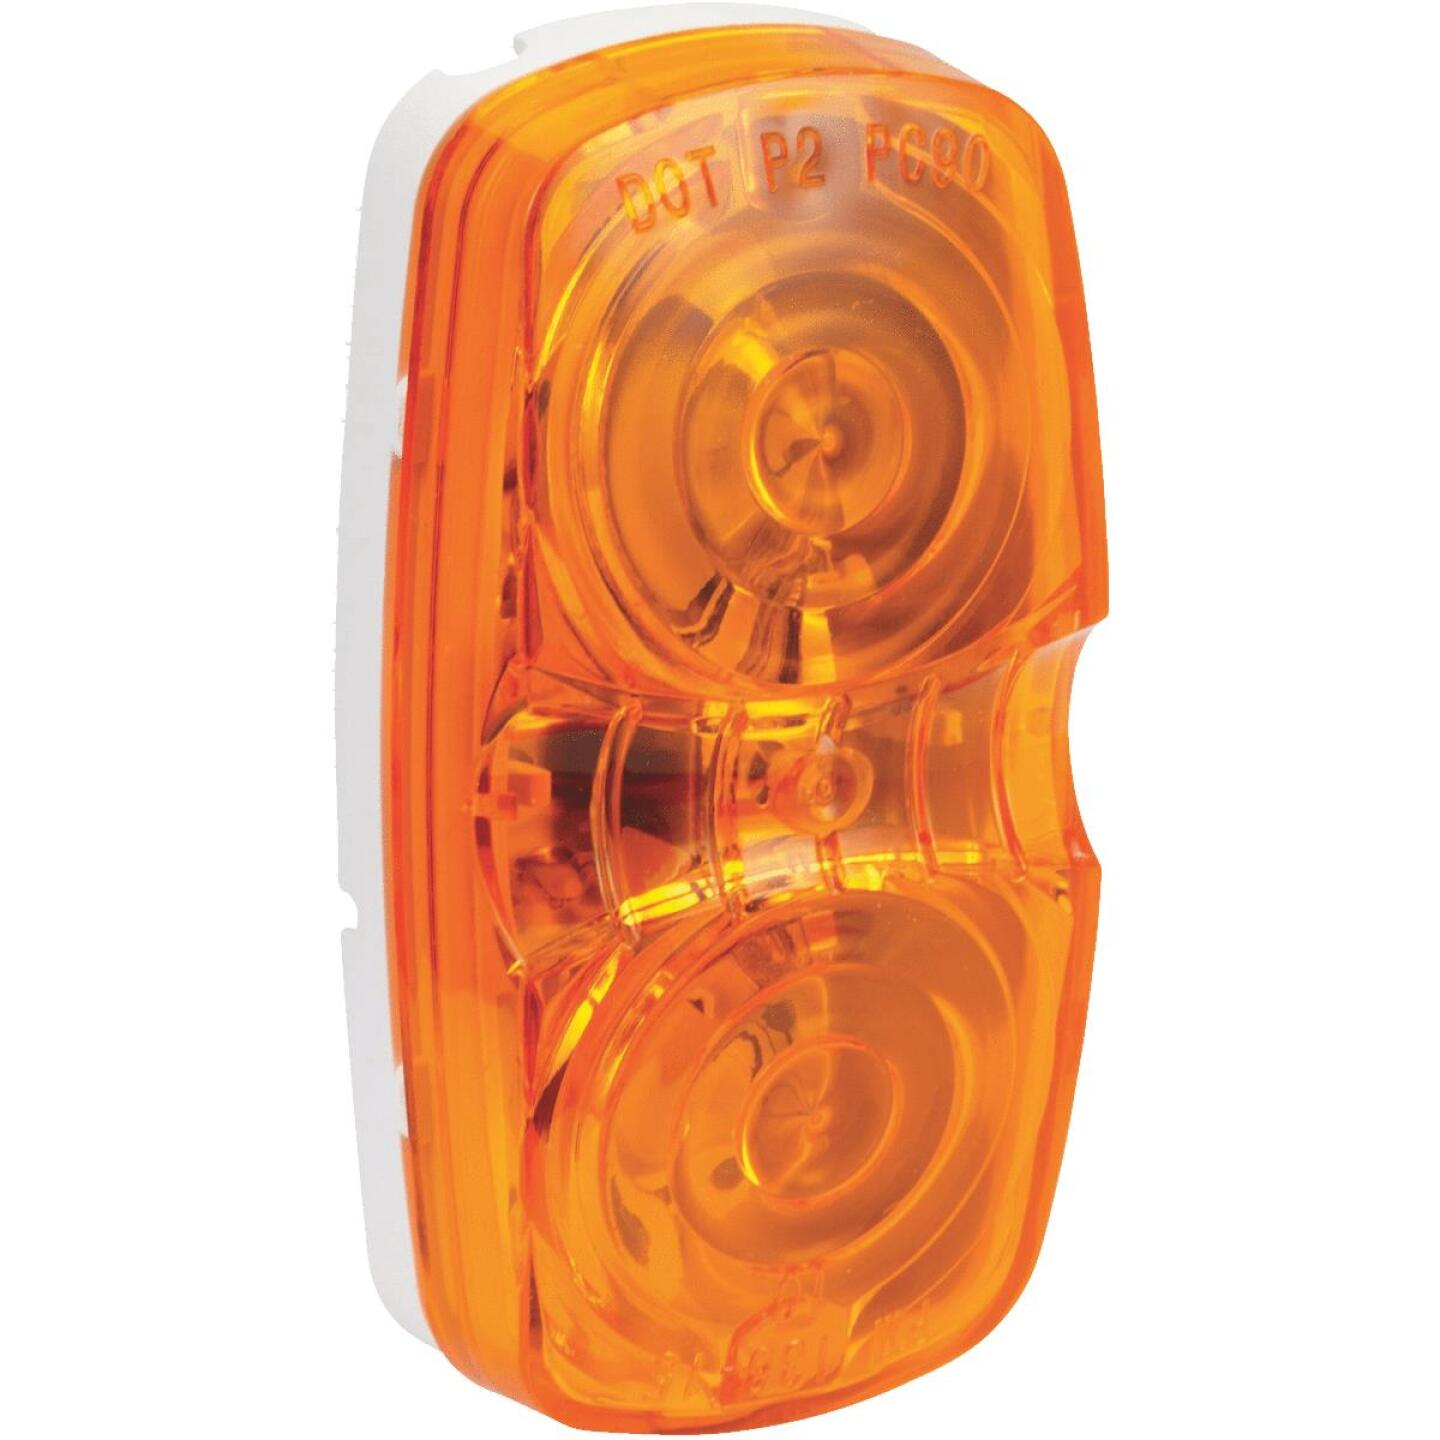 Peterson Low-Profile 12 V. Amber Clearance Light Image 1